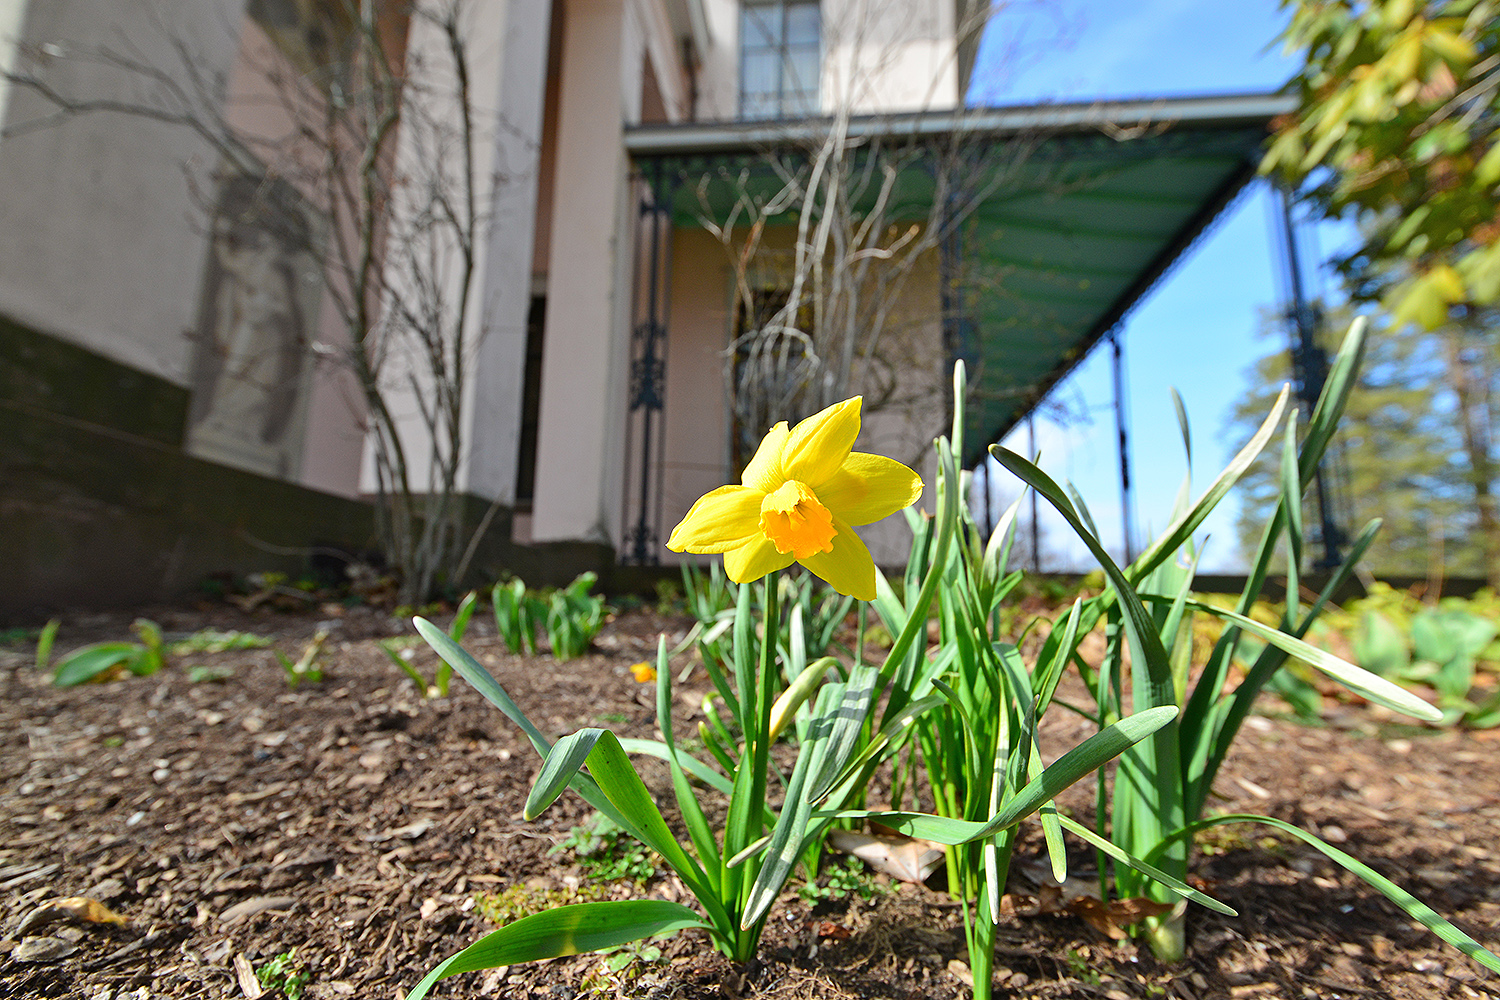 The first daffodil of spring has sprung at the Davison Art Center, April 3.